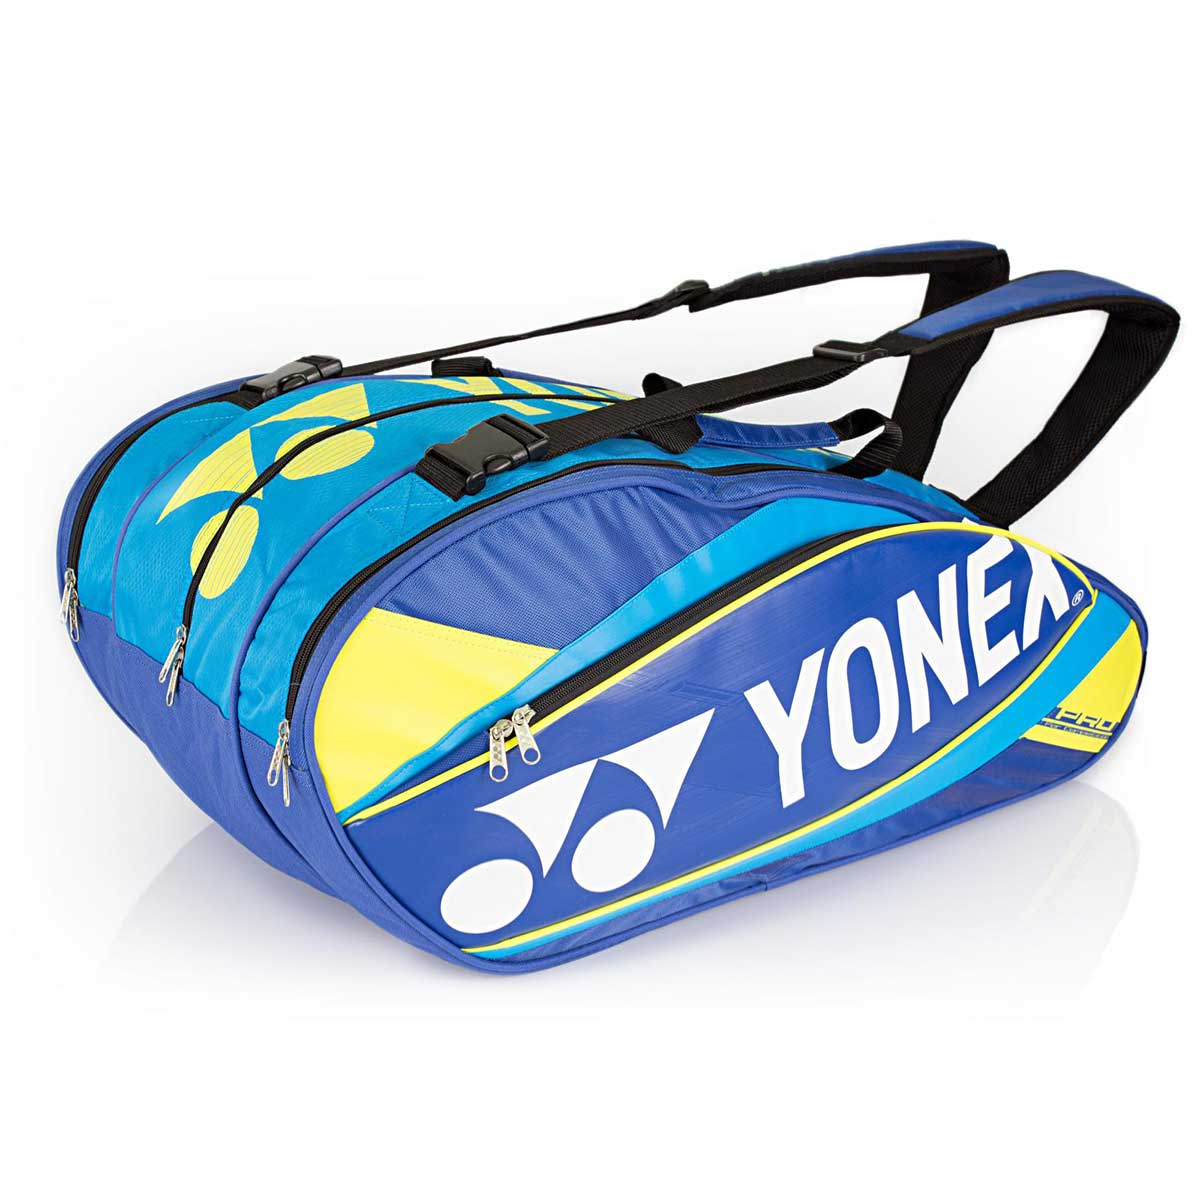 14e0b8ab3b3 Buy YONEX SUNR 9529TG BT9 Badminton Kit Bag (Blue) Online